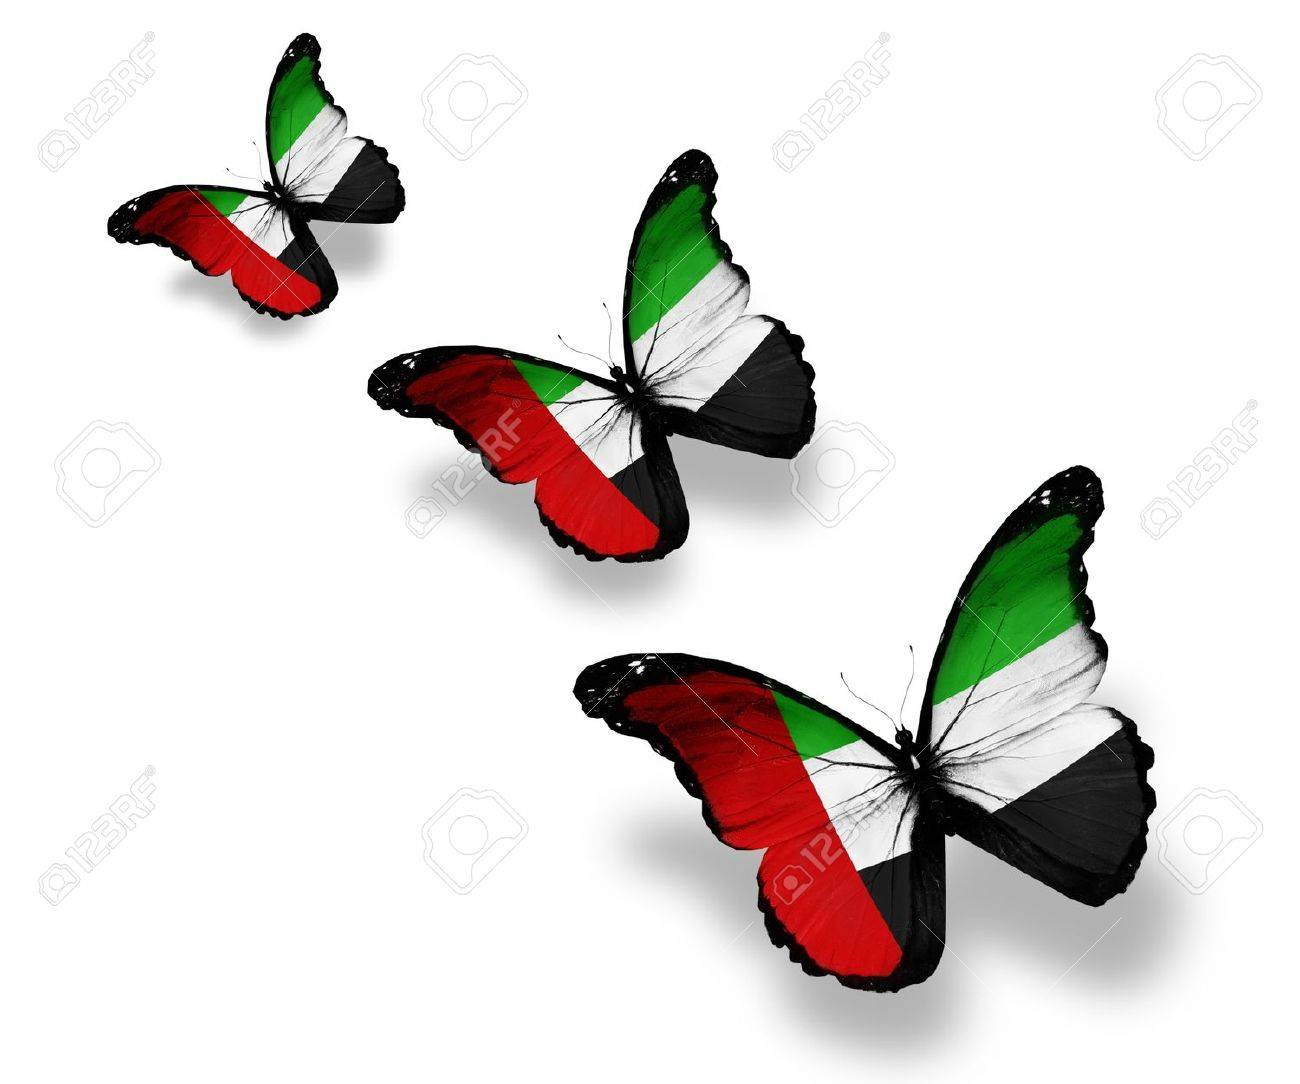 Uae flag stock photos royalty free business images three uae flag butterflies isolated on white biocorpaavc Images